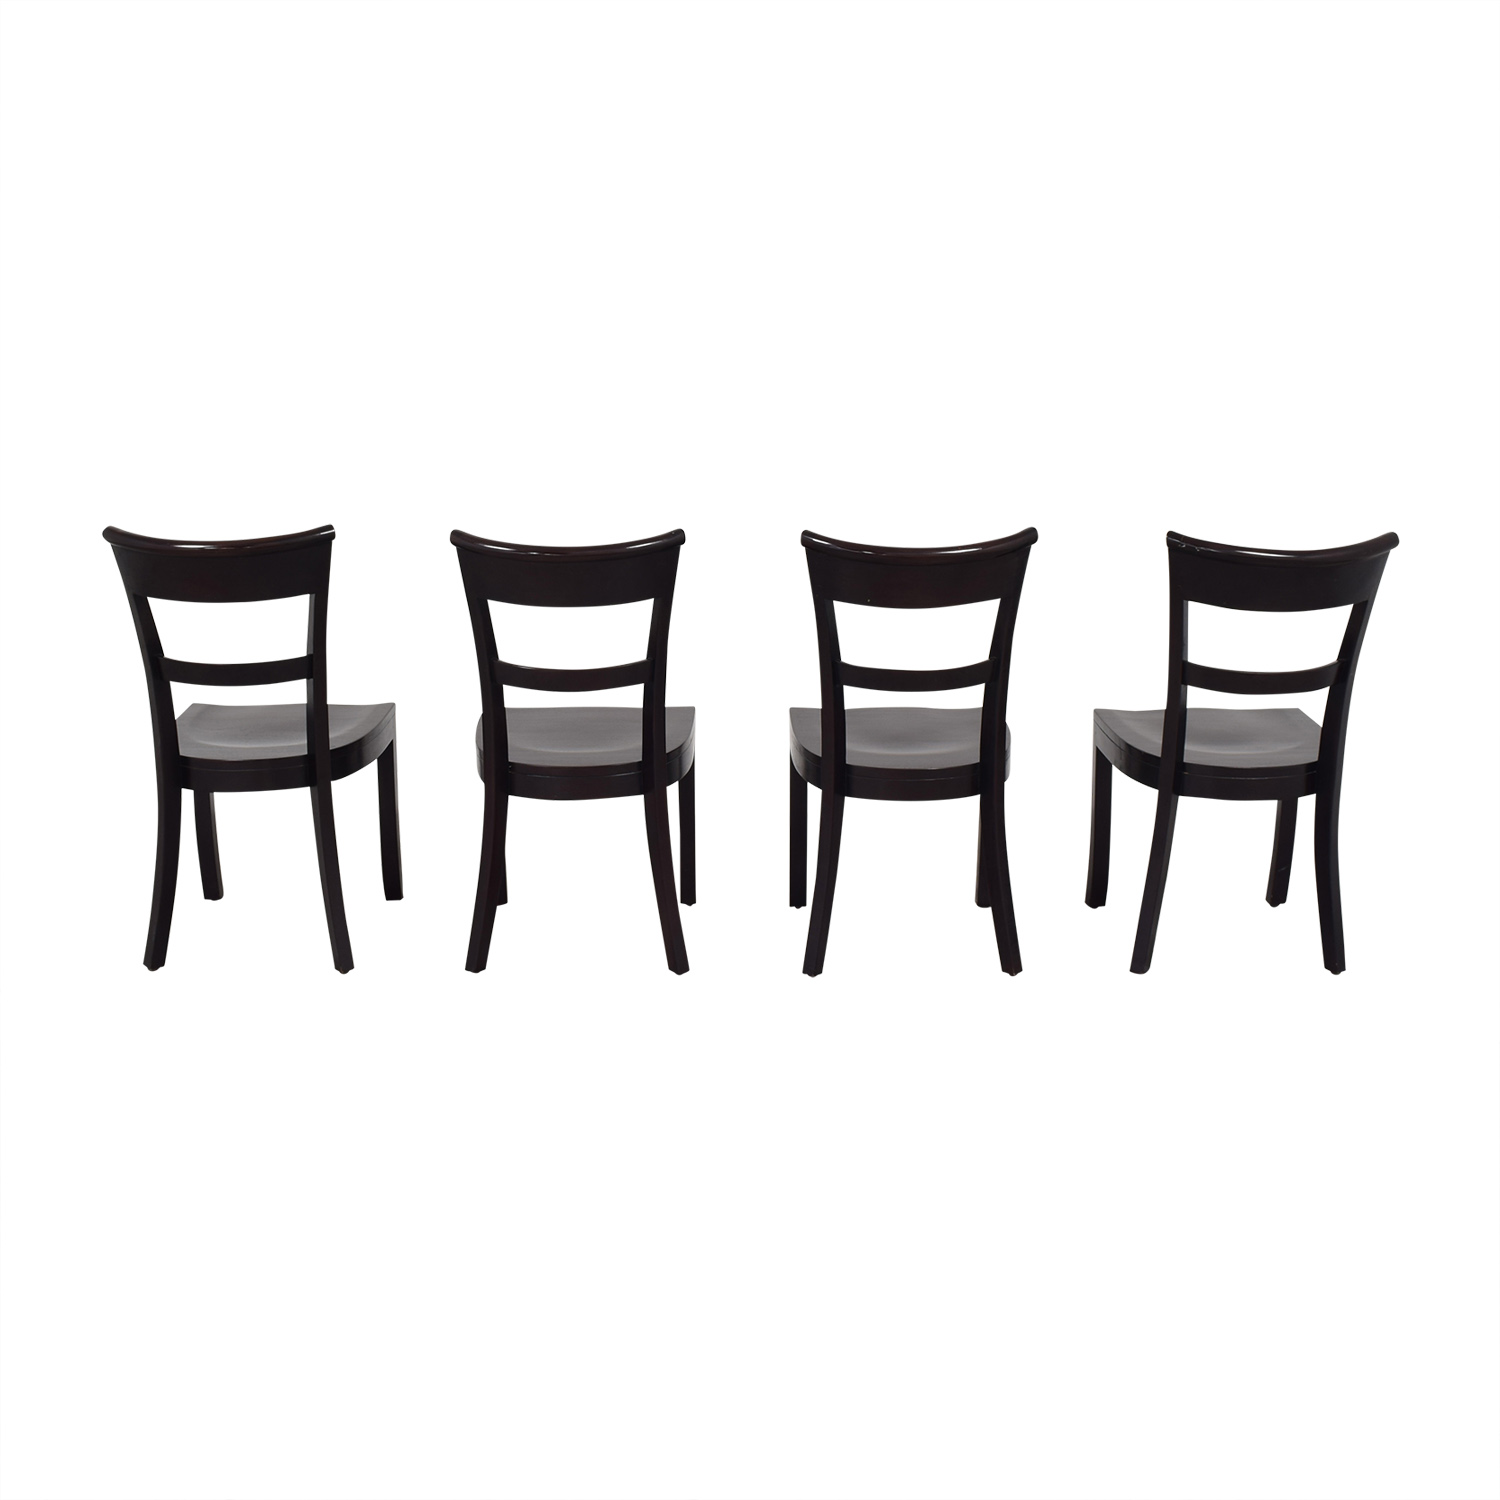 Crate & Barrel Crate & Barrel Dining Side Chairs price